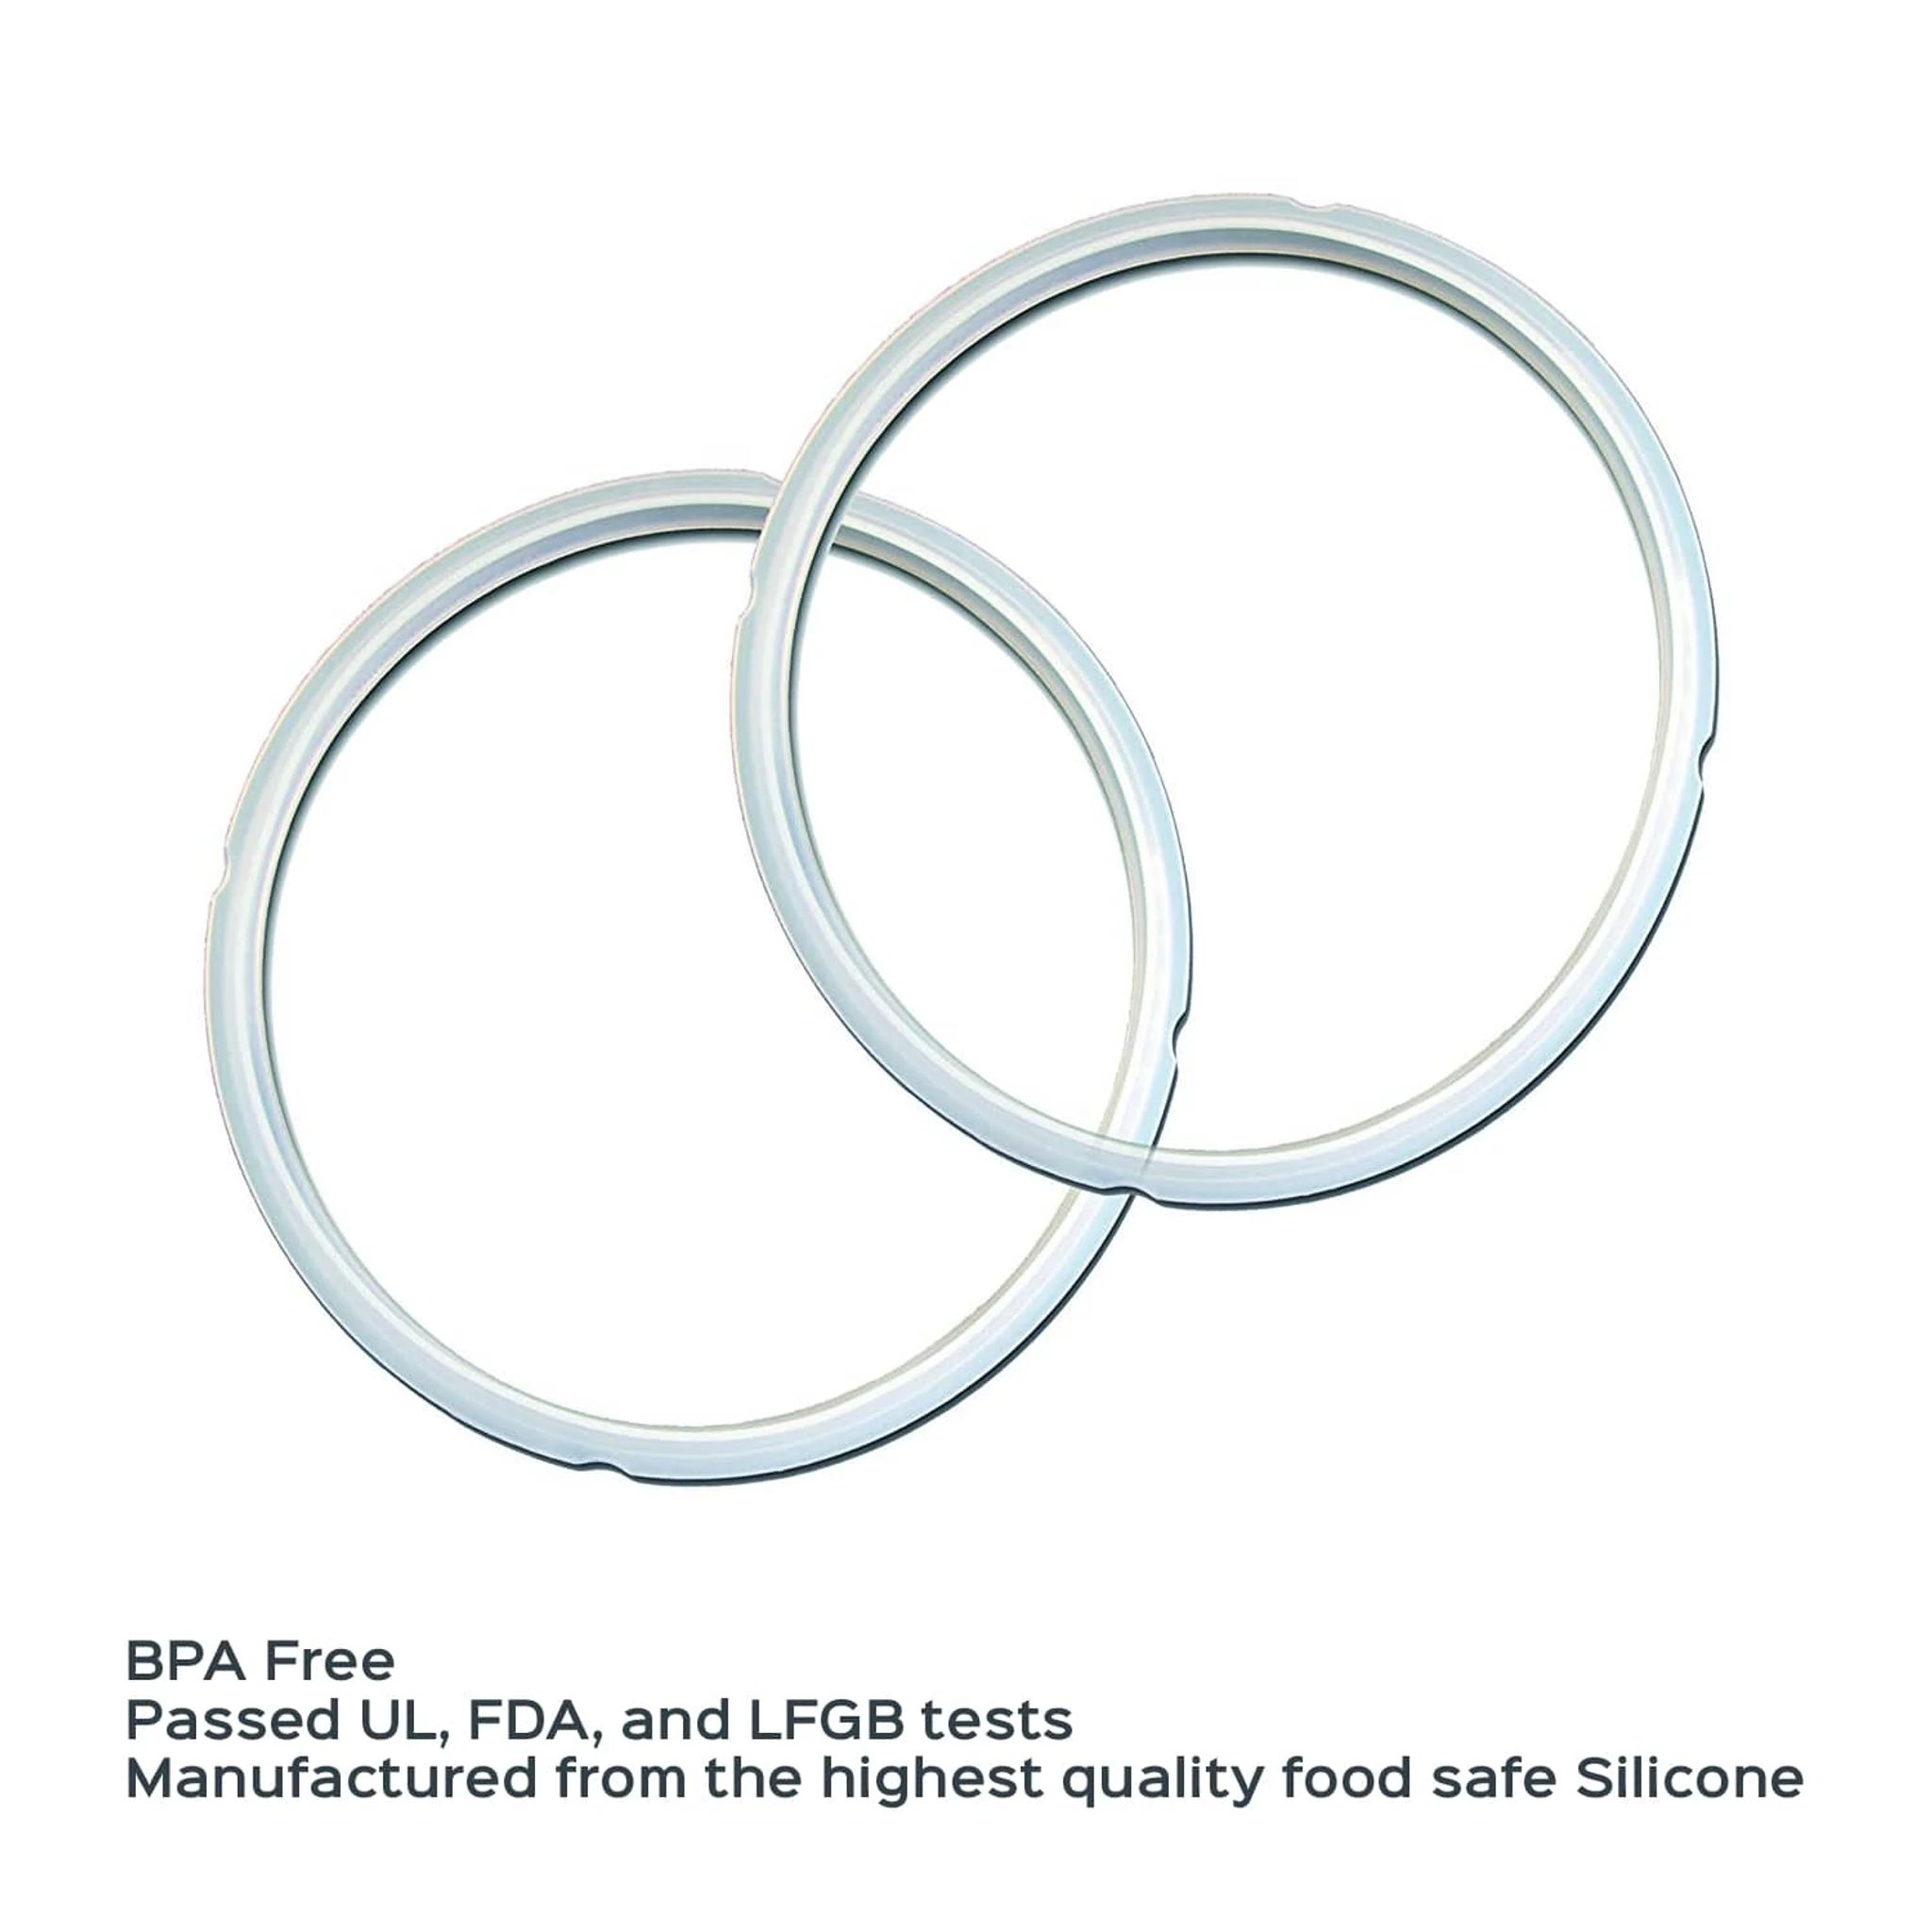 Instant Pot 3-quart Clear Sealing Ring, 2-pack